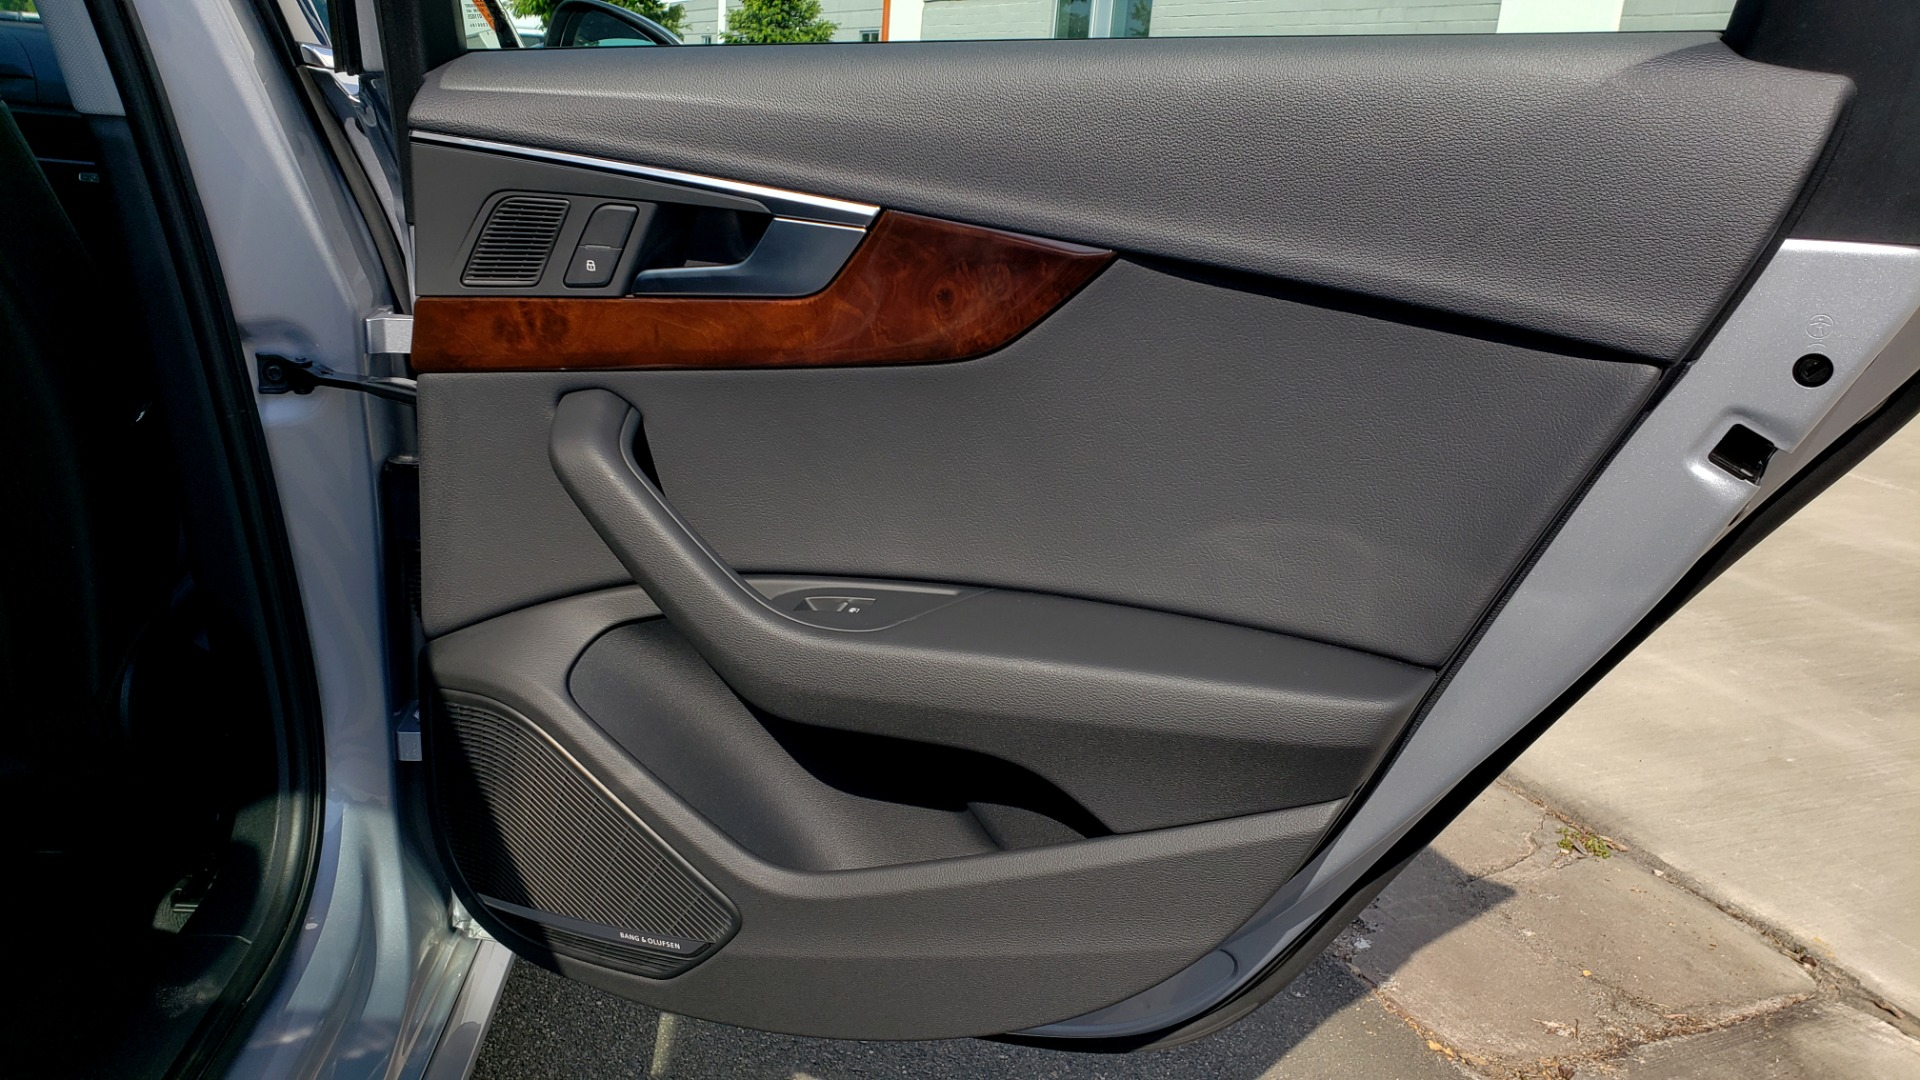 Used 2018 Audi A4 PREMIUM PLUS 2.0T / NAV / SUNROOF / B&O SND / CLD WTHR / REARVIEW for sale $29,395 at Formula Imports in Charlotte NC 28227 71